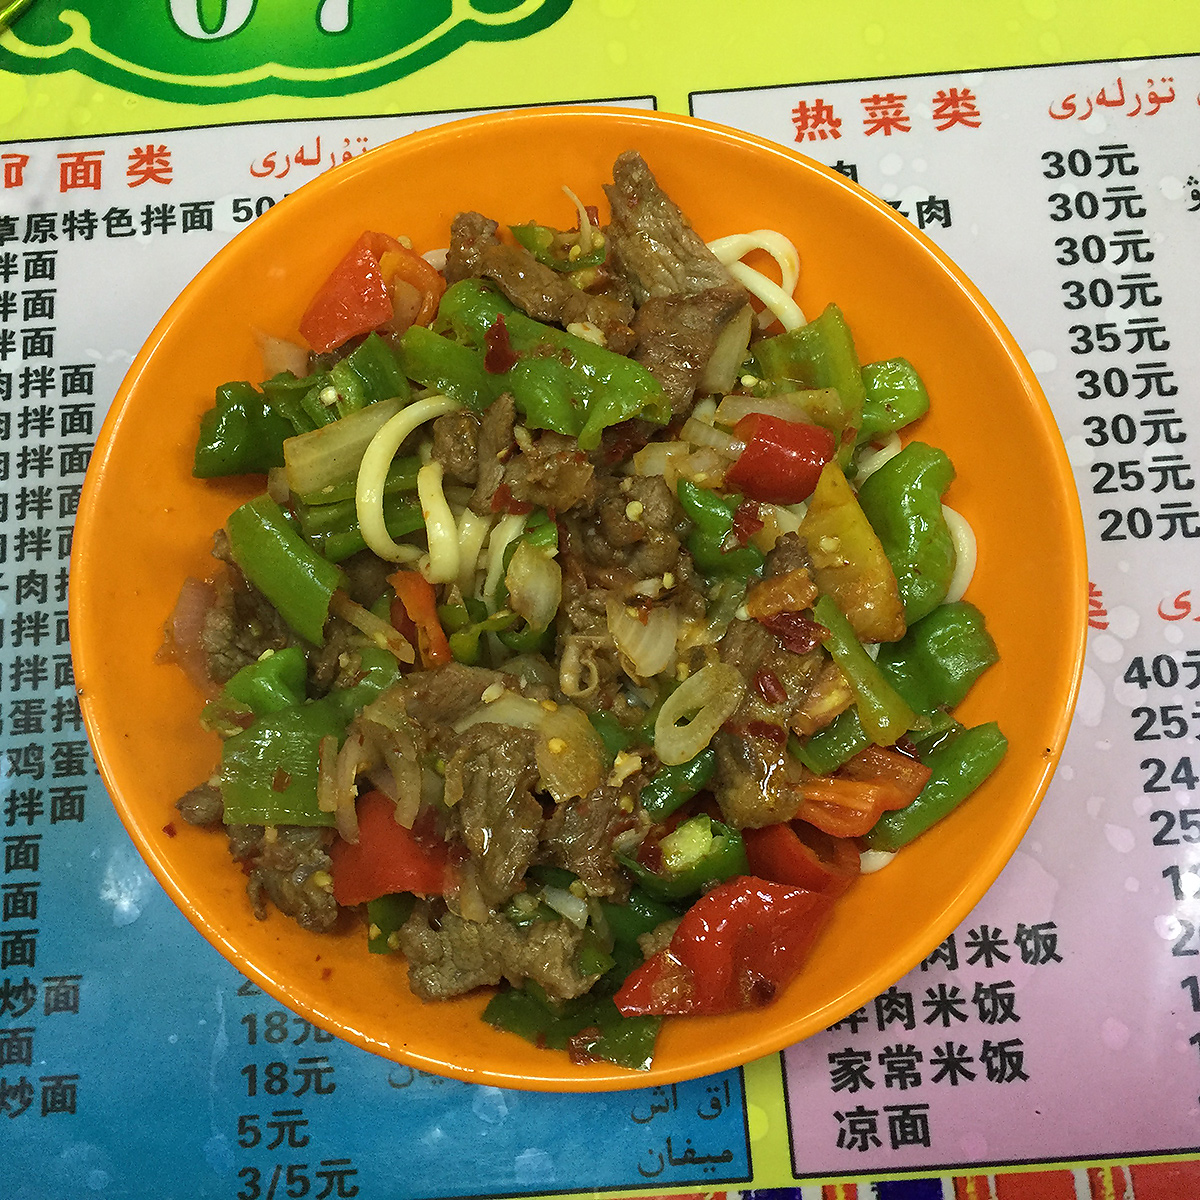 Plate of noddles and mutton, Beitun, Xinjiang, 125 July 2017. (Craig Brelsford)